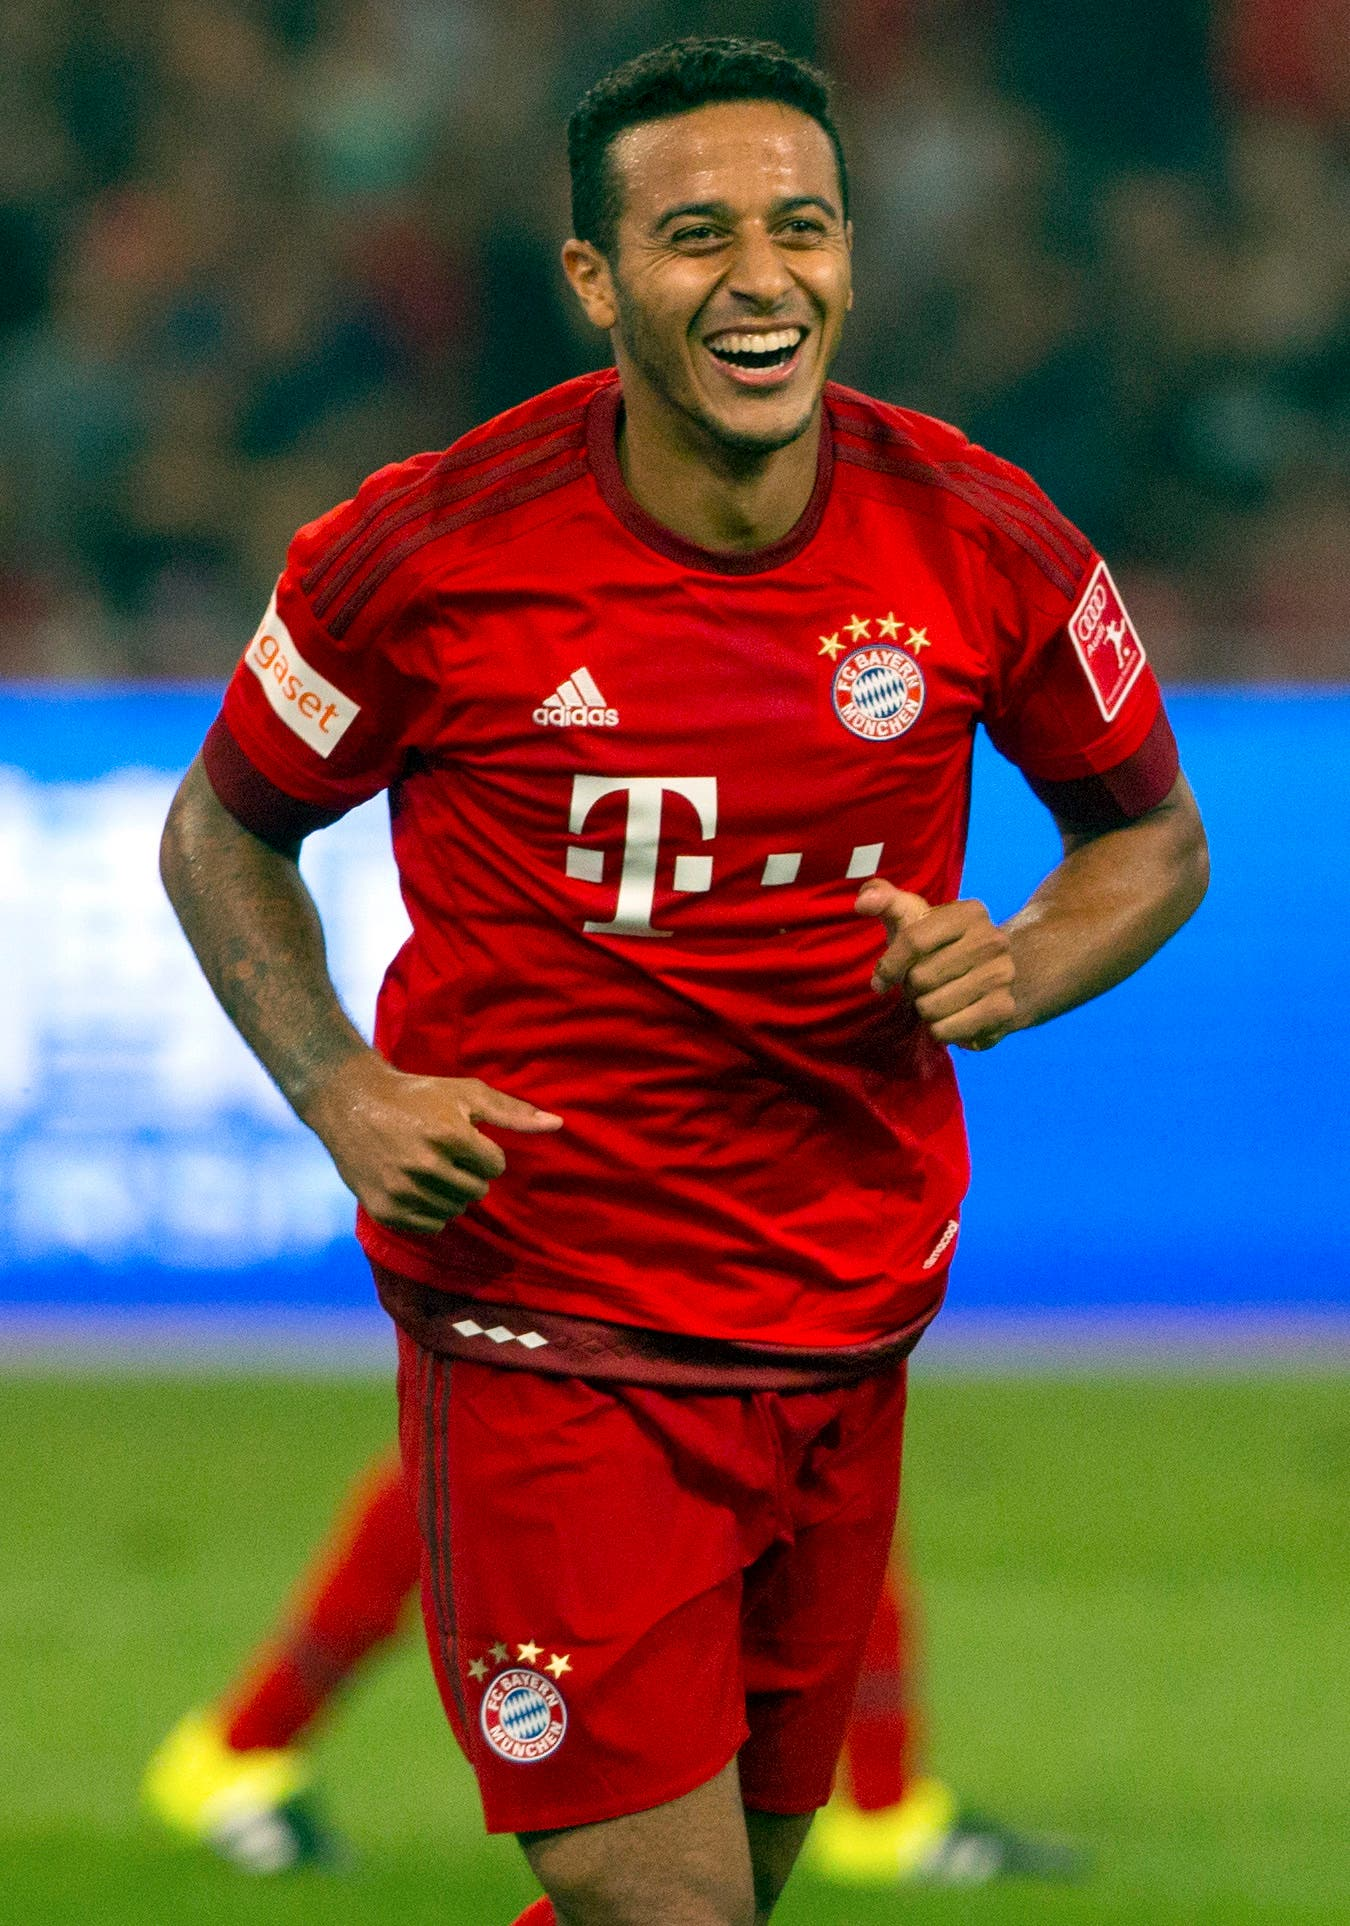 Bayern's Thiago cerebrates after scoring a goal in the second half of their friendly soccer match against Valencia in Beijing, Saturday, July 18, 2015. Bayern Munich beat Valencia, 4-1. (AP Photo/Mark Schiefelbein)